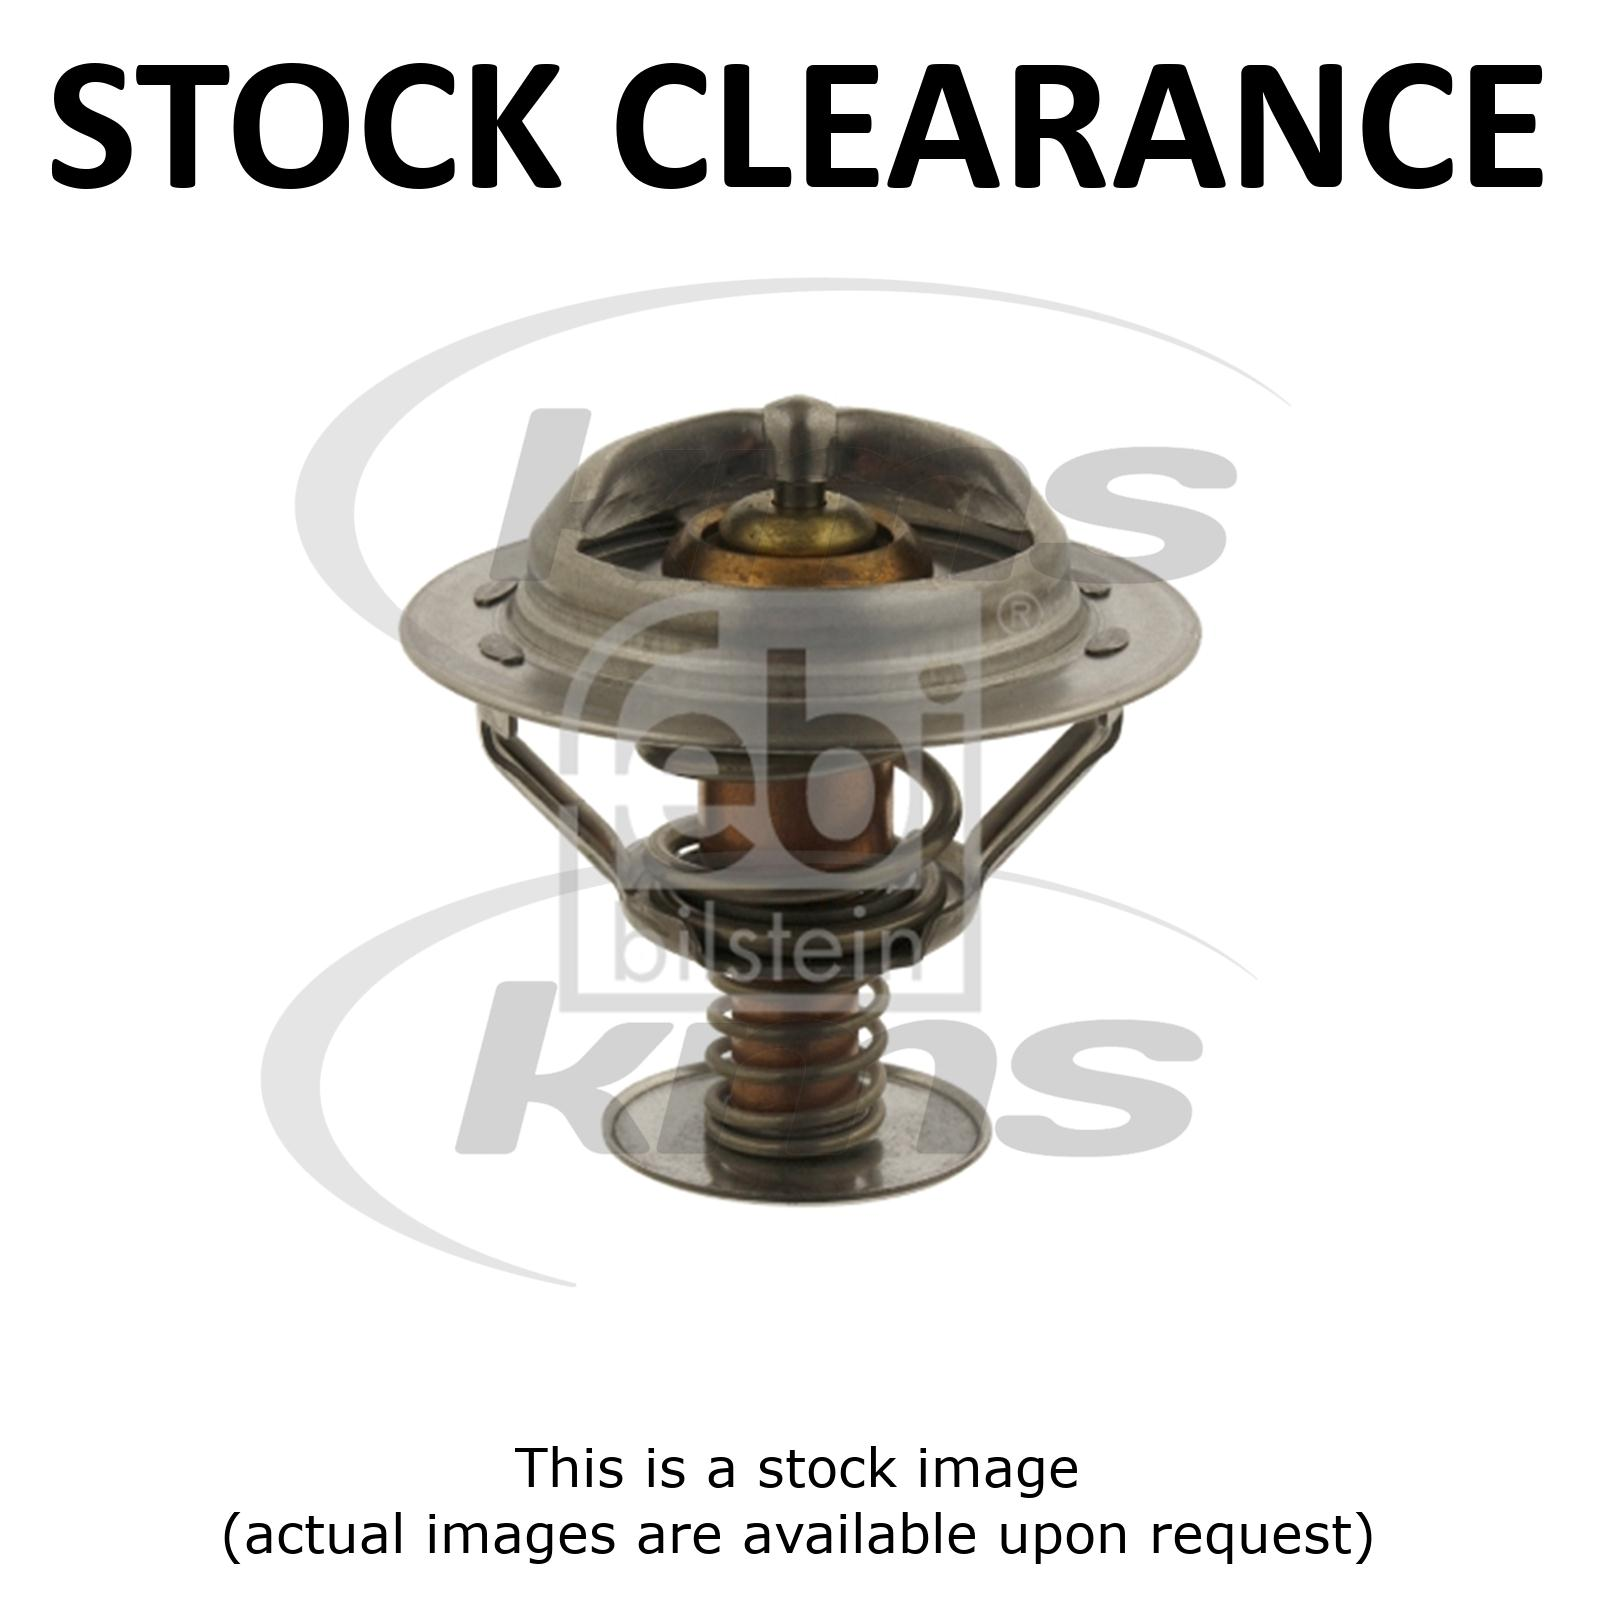 Stock Clearance New Genuine ANTIFREEZE WATER COOLANT TOYOTA LAND